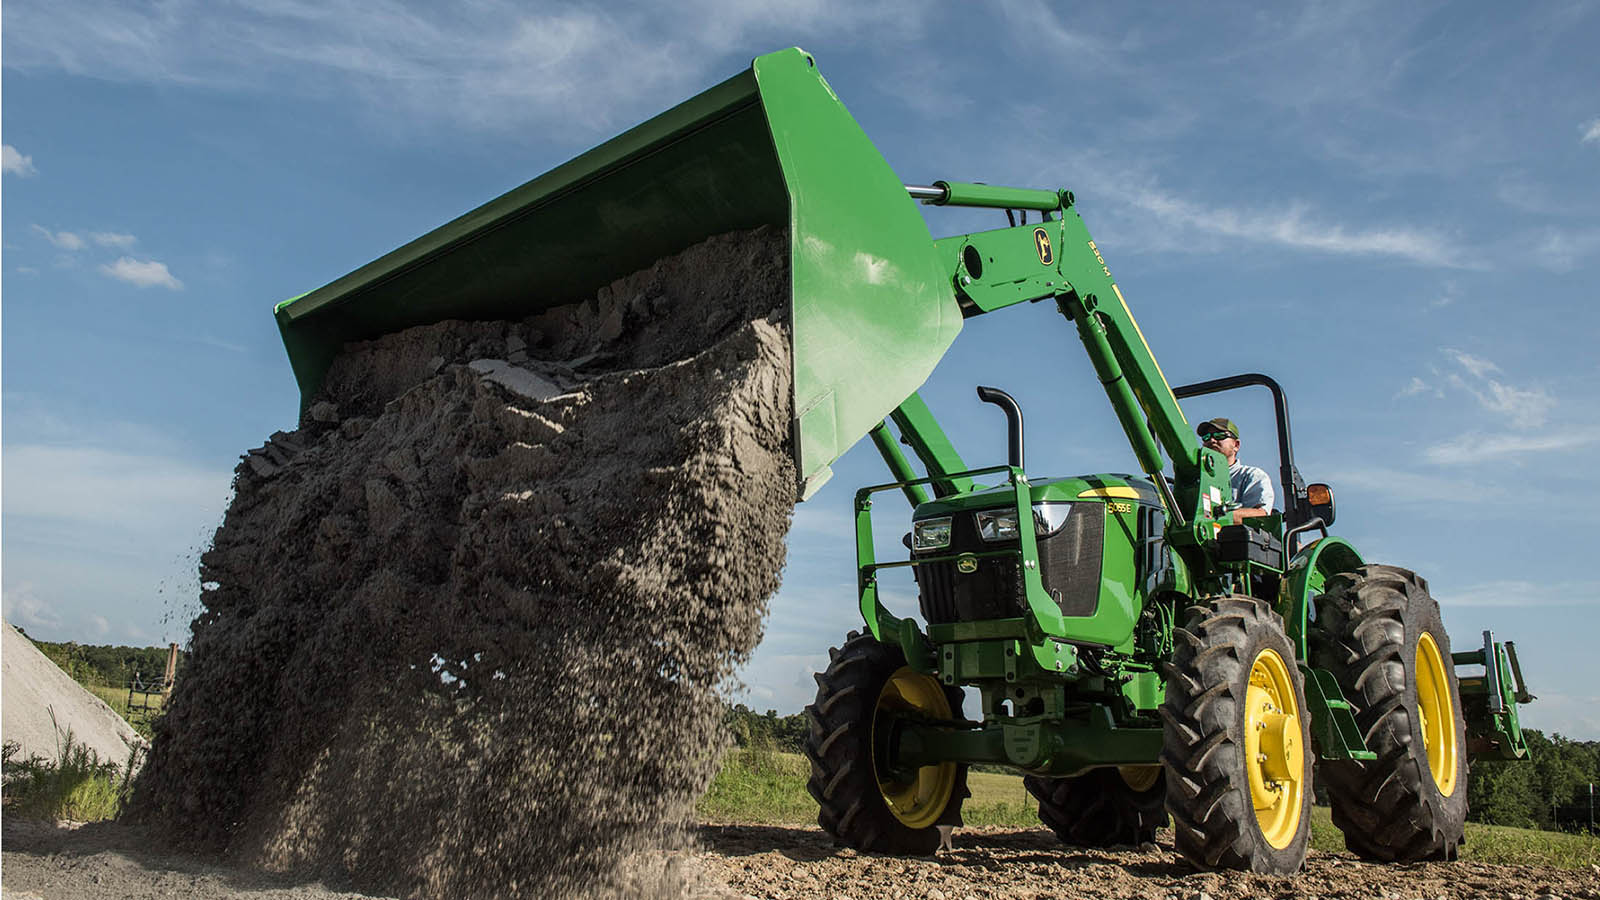 Loader visibility has been improved and controls have been repositioned to enhance operator comfort on the updated John Deere 5E Series Utility Tractors.